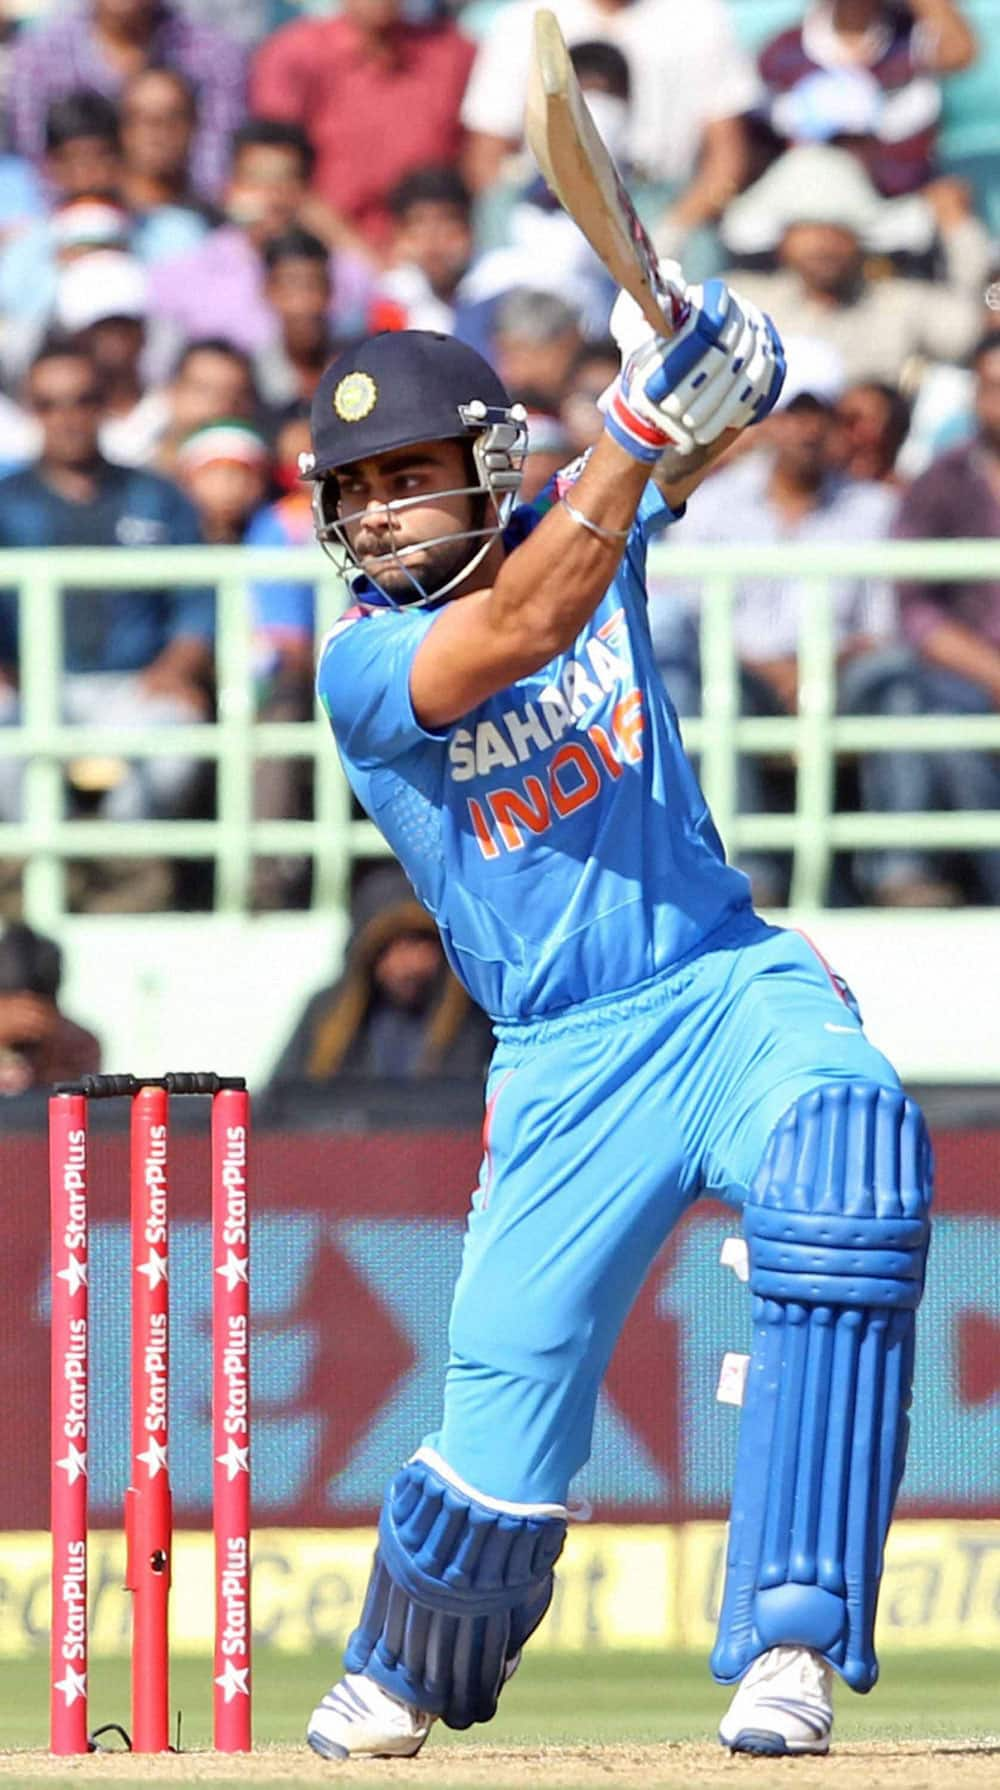 Cricketer Virat Kohli plays a shot during India vs West Indies 2nd ODI match in Visakhapatnam.